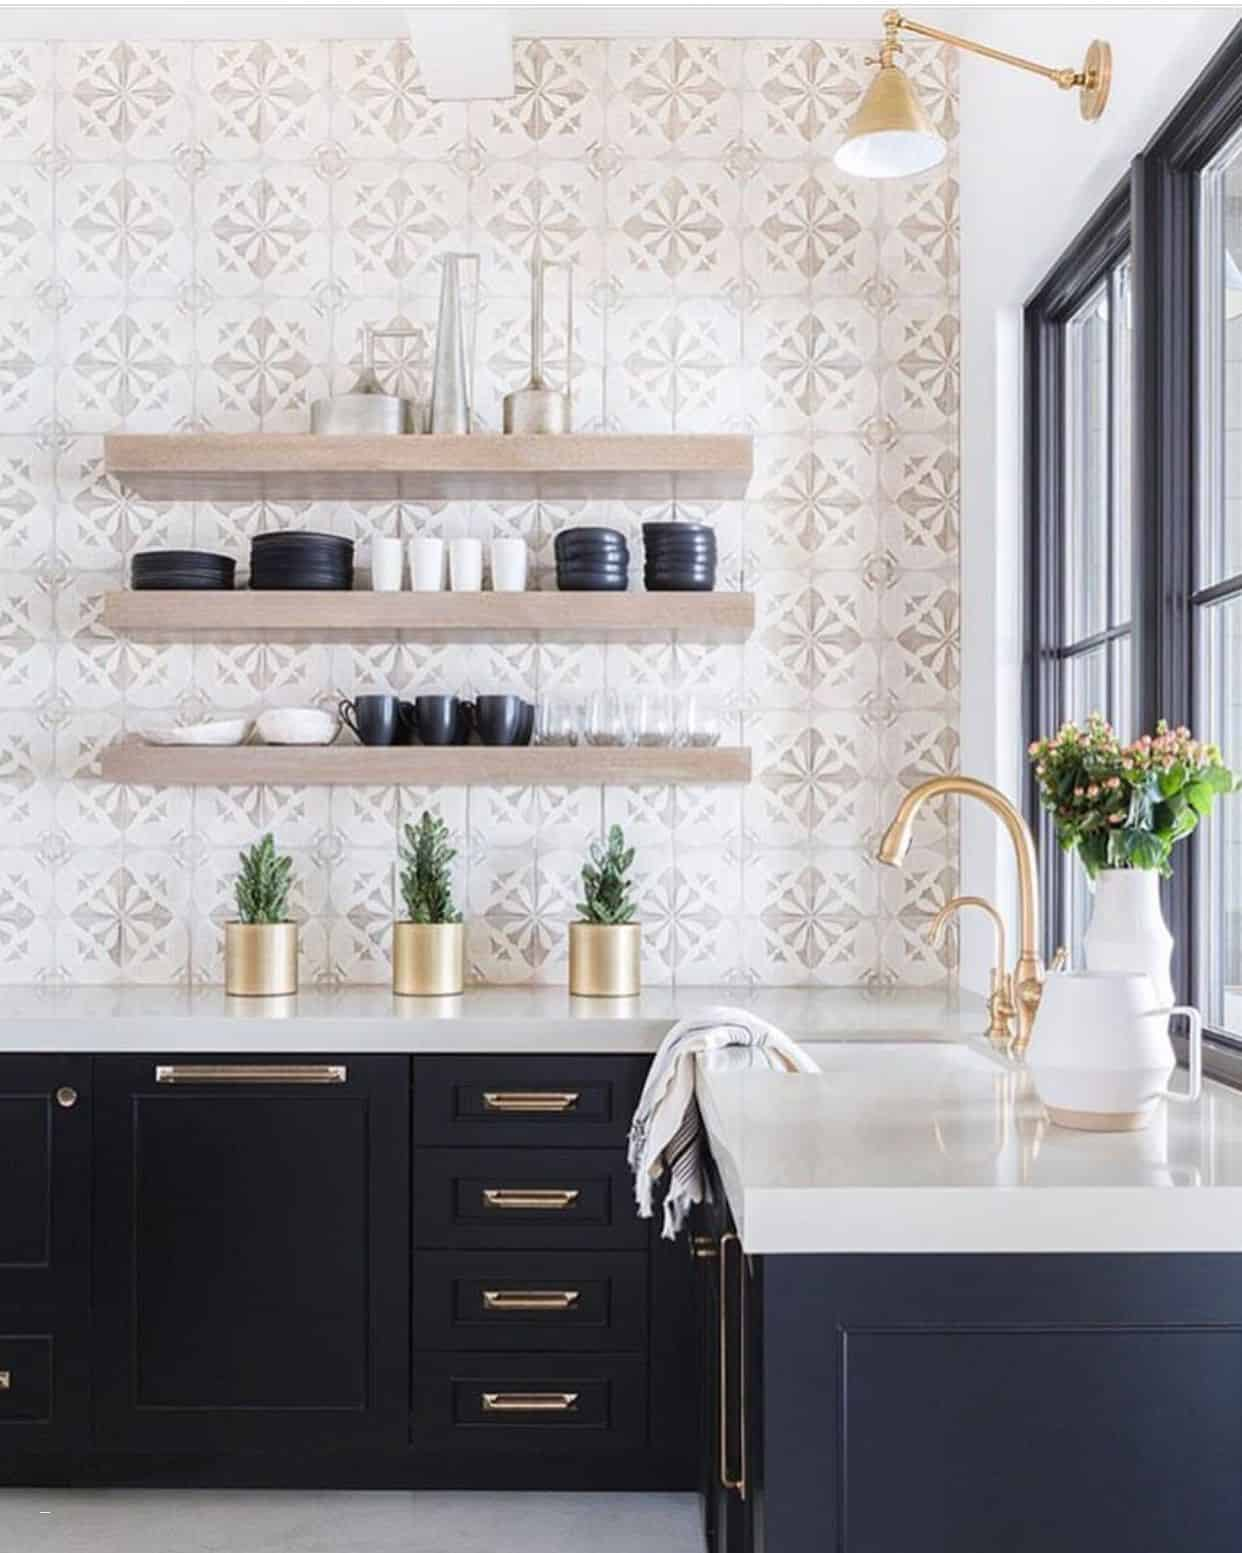 kitchen with shelves instead of cabinets – Elegant Patterned Backsplash Open Shelving Brass Details